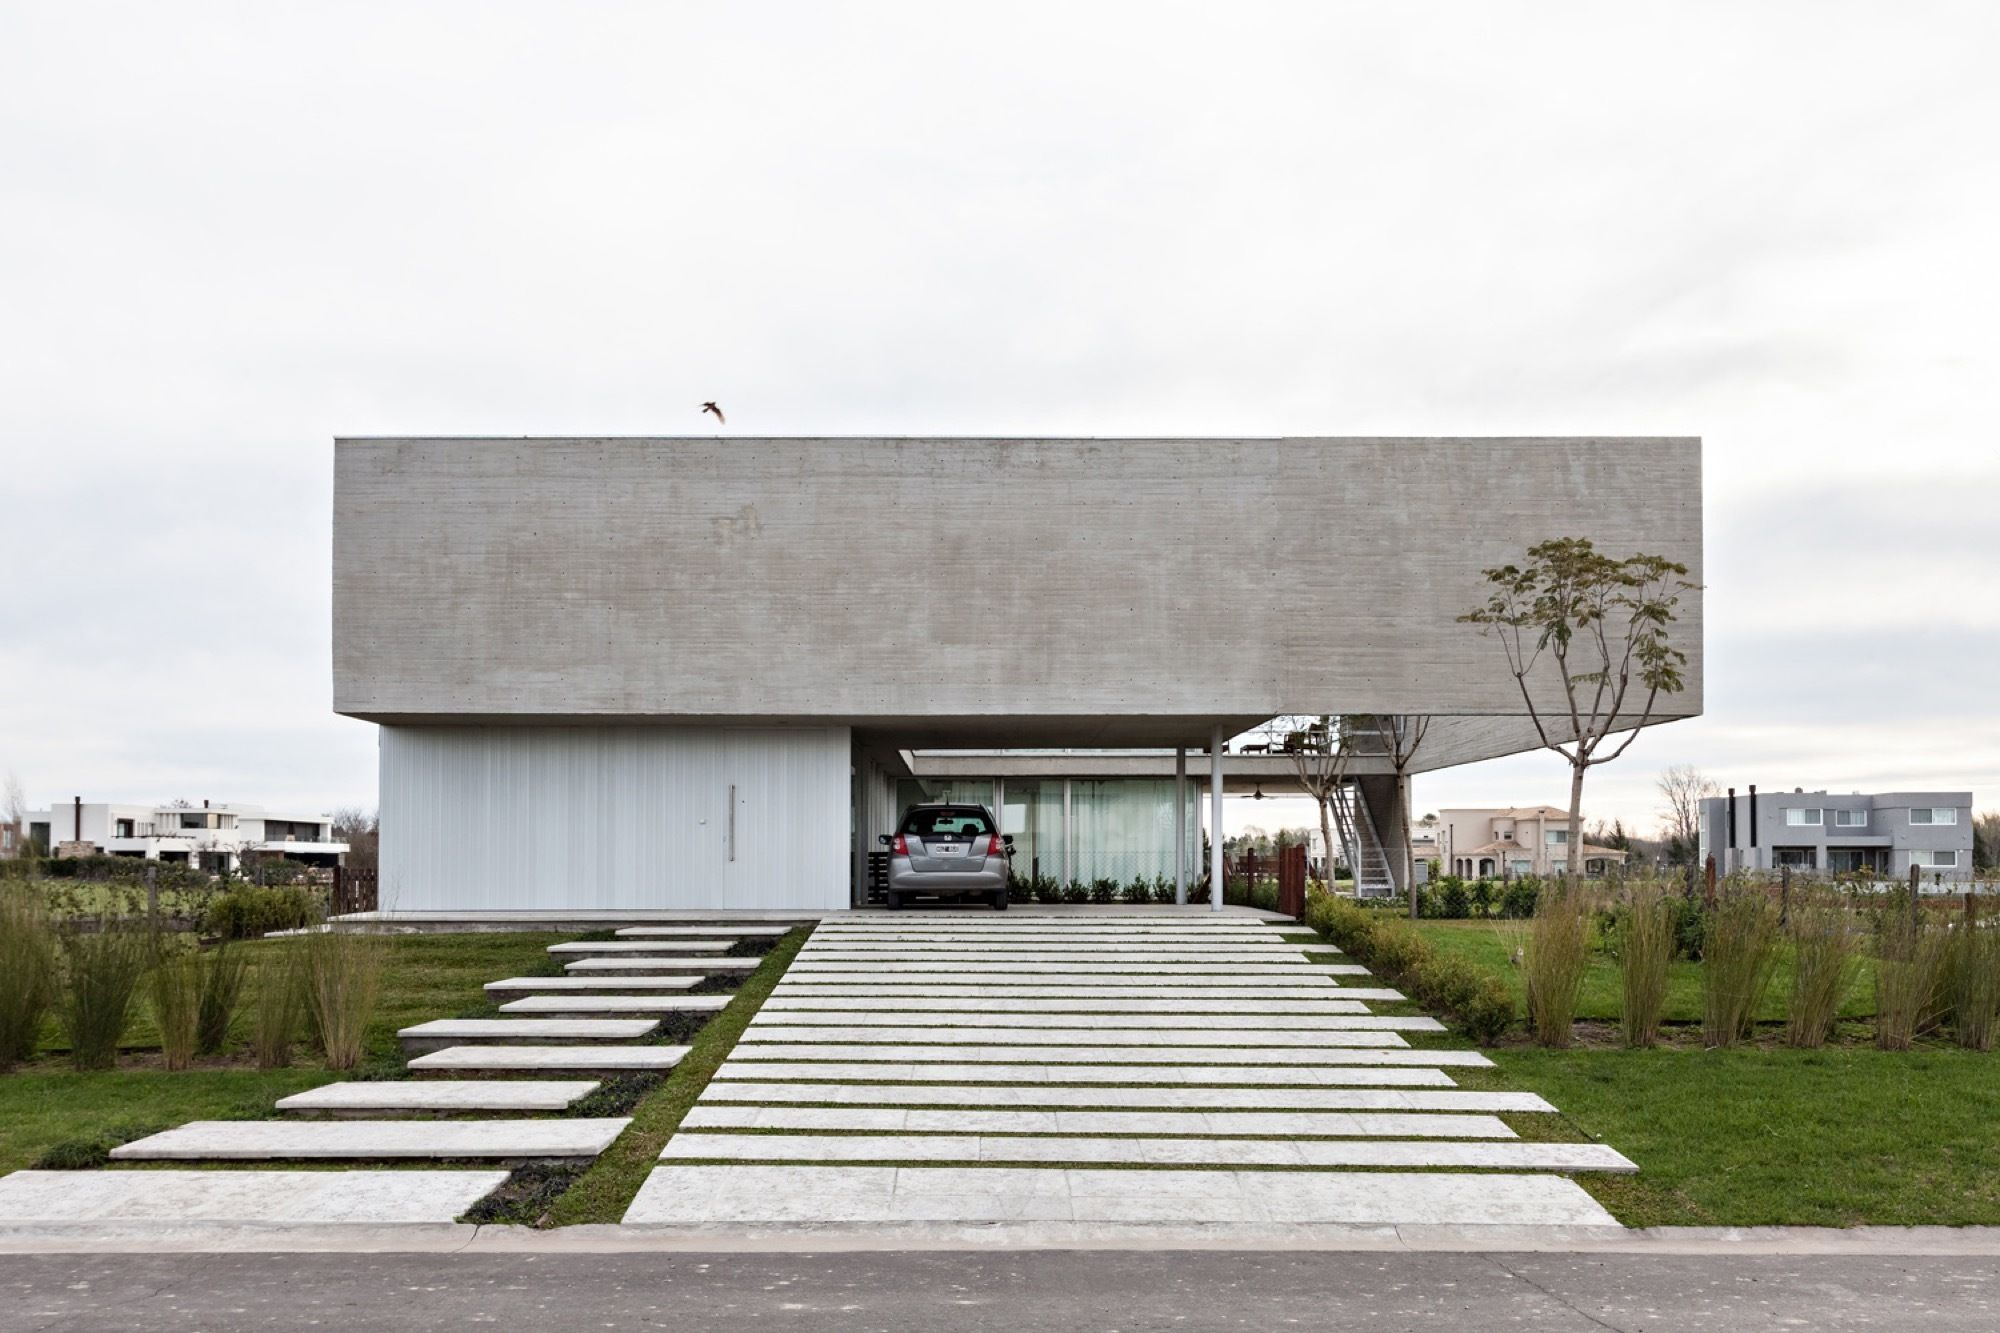 Albano Mobili ~ Gallery of lamas house moarqs ottolenghi architects 9